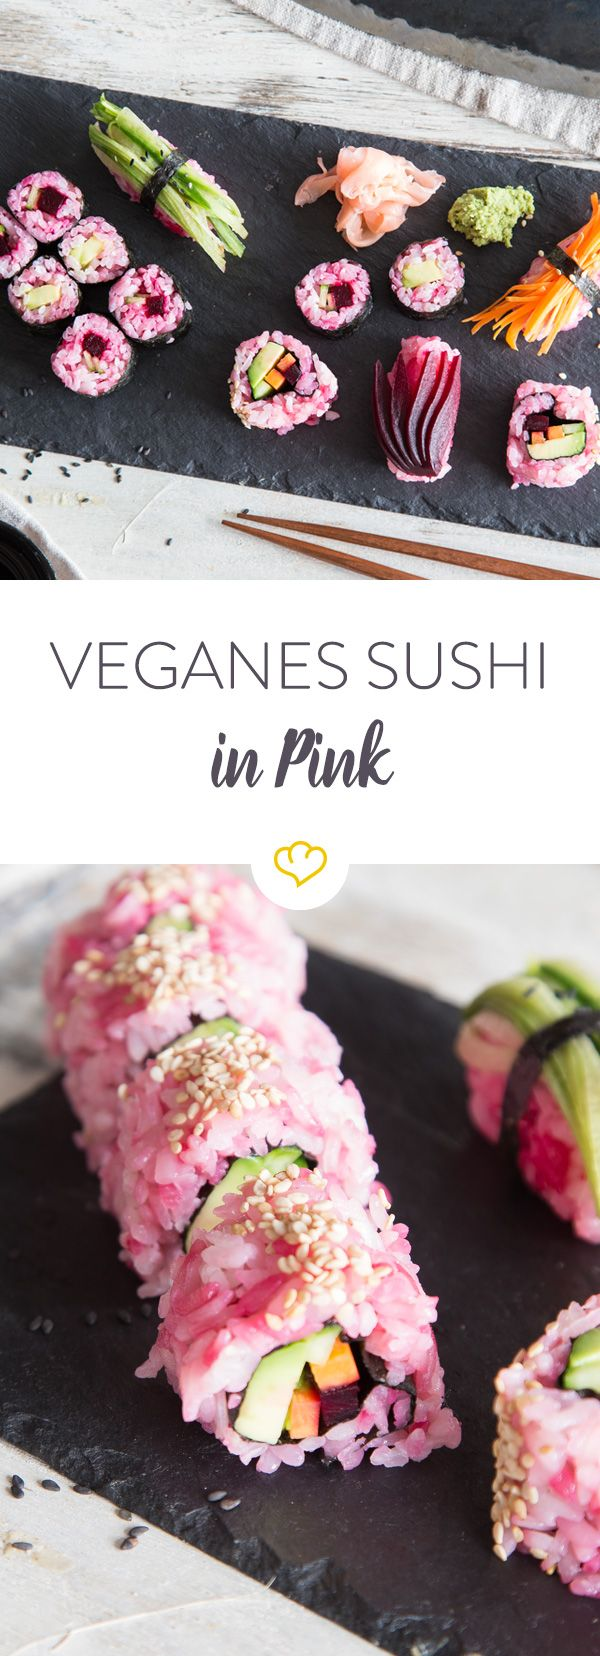 Veganes Sushi - in Pink Entdeckt von Vegalife Rocks: www.vegaliferocks.de✨ I Fleischlos glücklich, fit & Gesund✨ I Follow me for more vegan inspiration @vegaliferocks